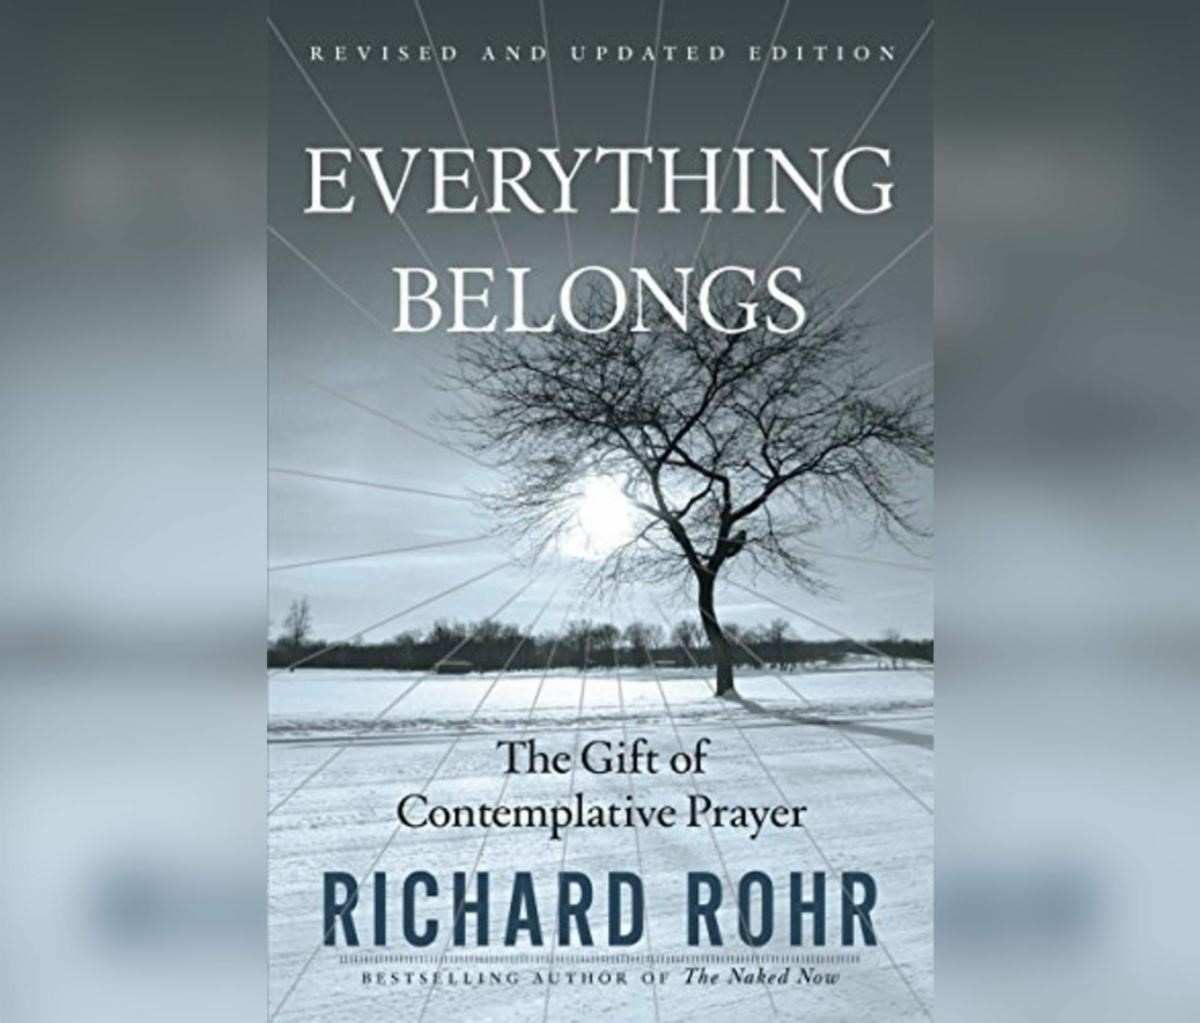 Richard Rohr.jpg